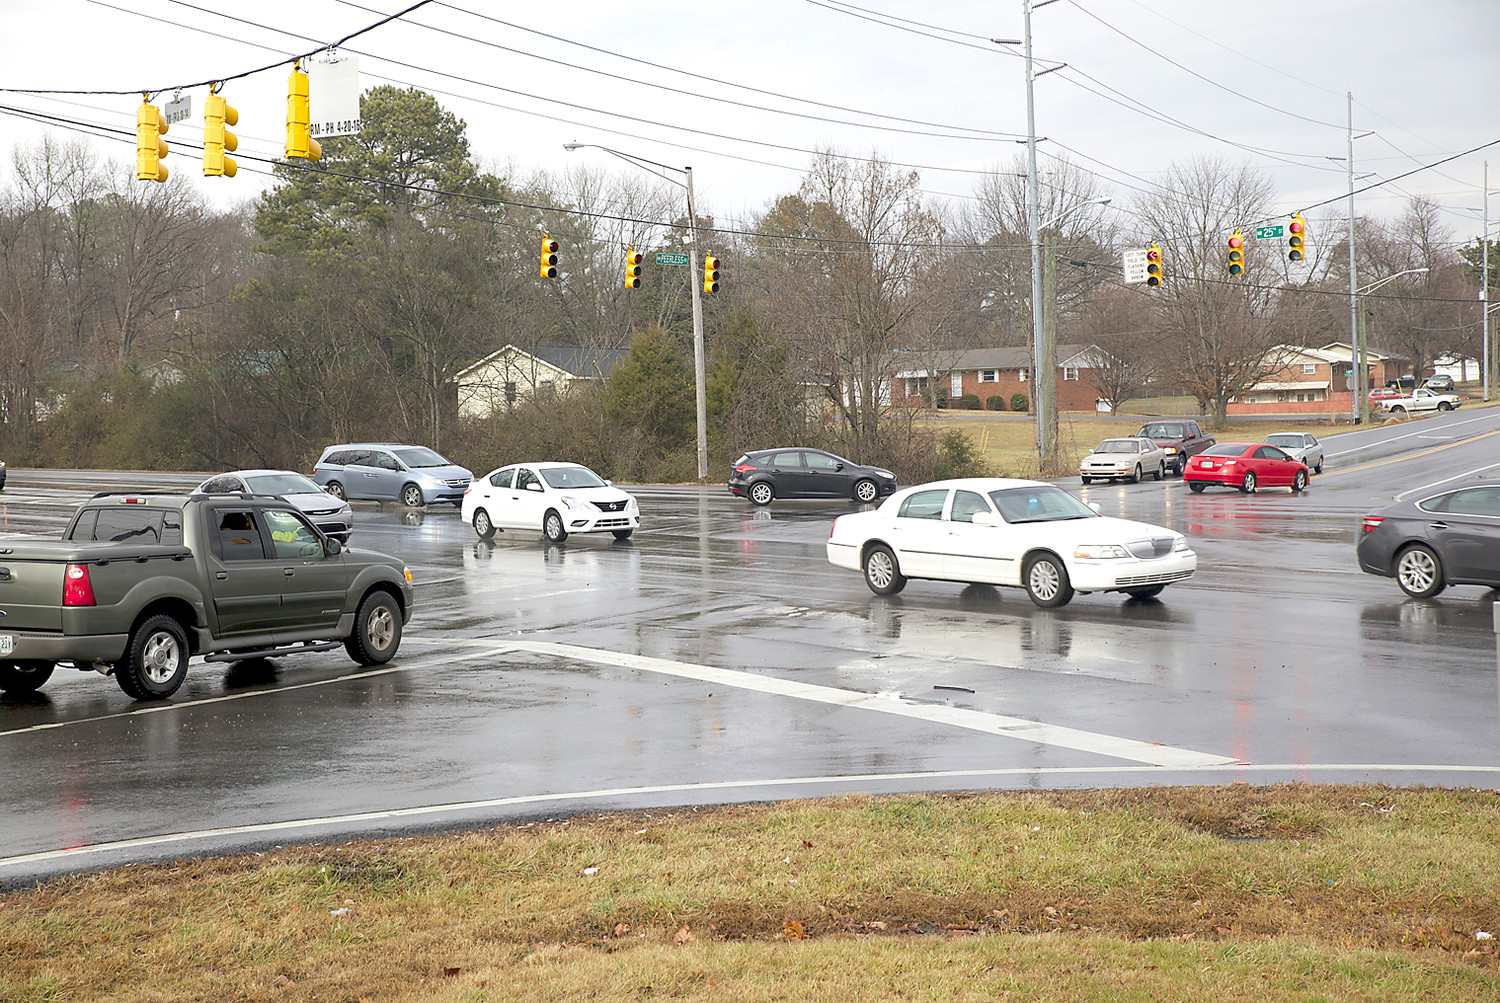 MOTORISTS will soon see relief at the intersection of Peerless Road and 25th Street, as part of the city's long list of road improvements set for this year.